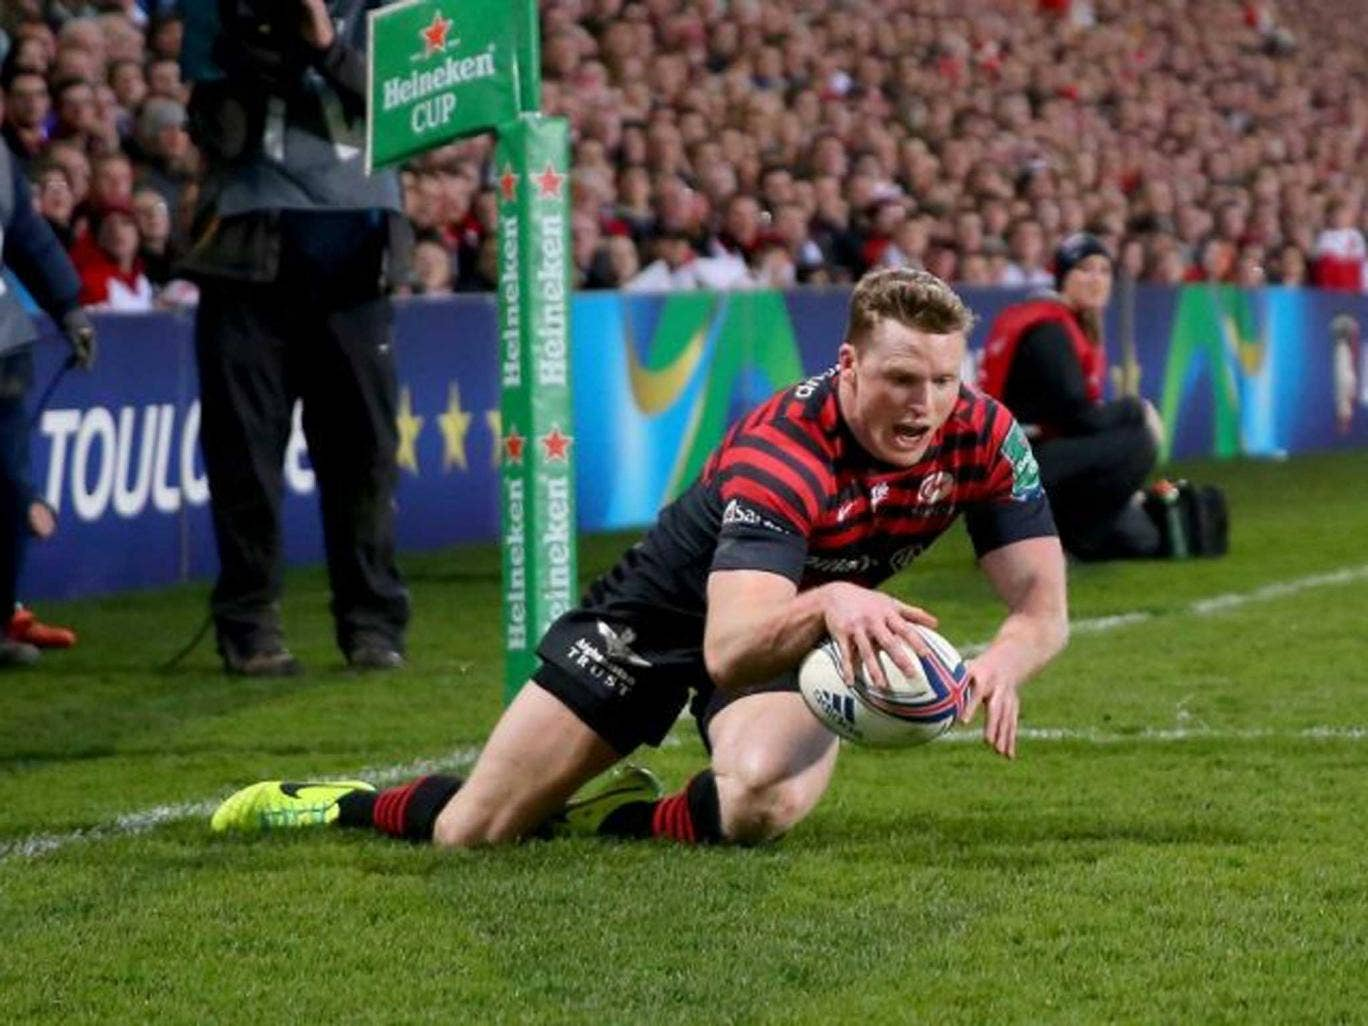 Double trouble: Saracens' Chris Ashton plunges over to score one of his two decisive tries